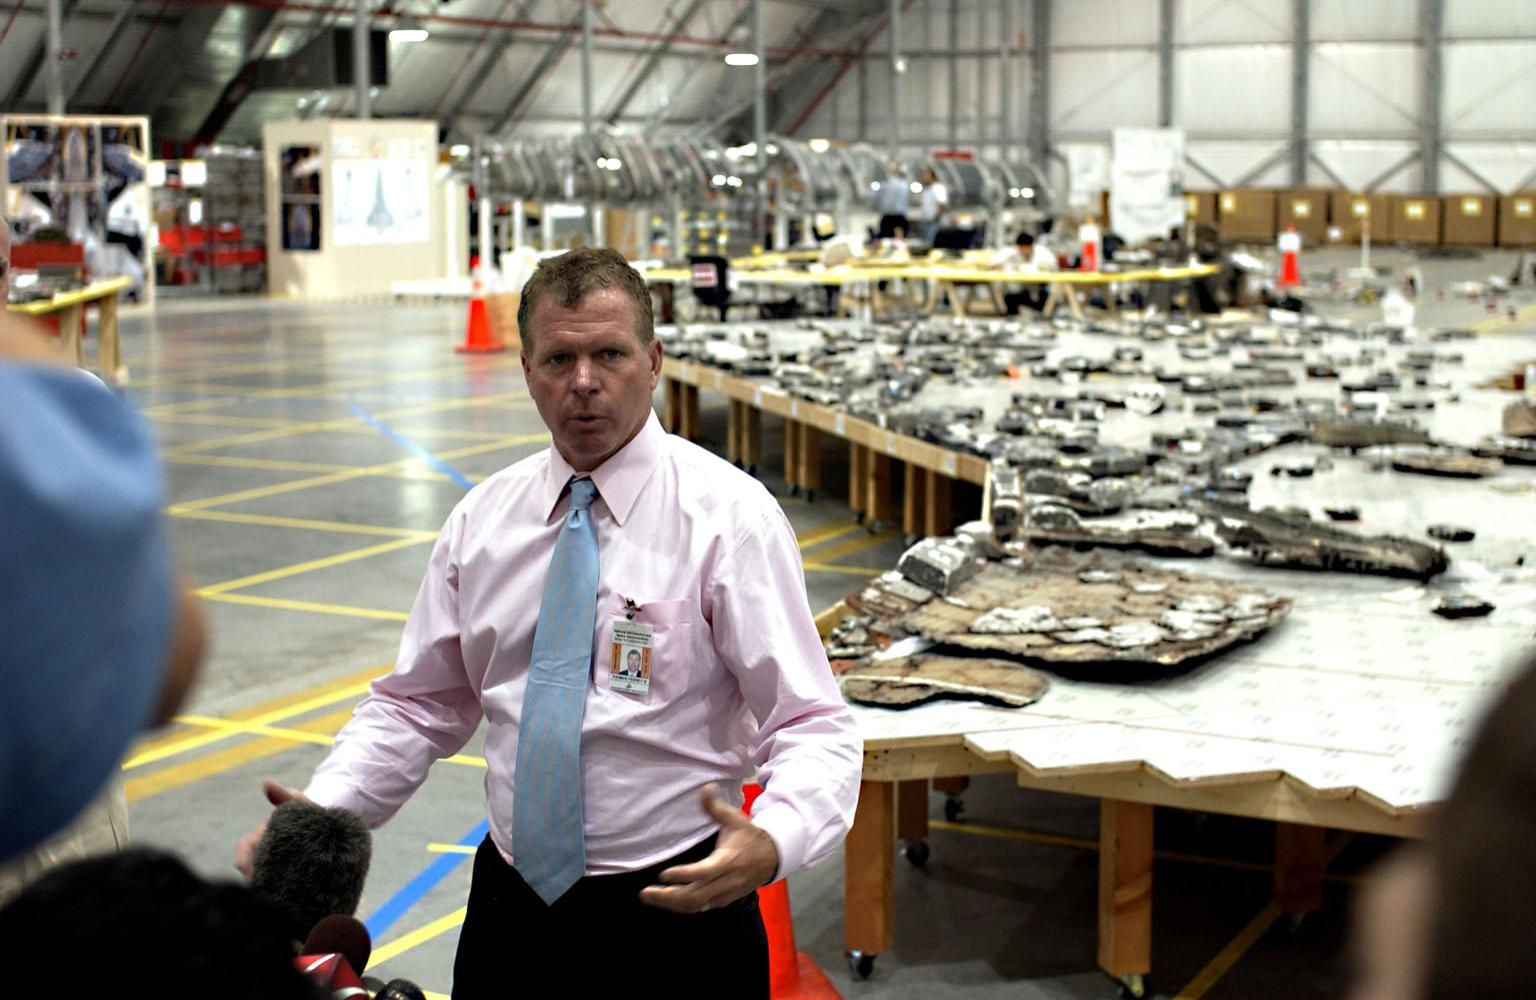 KENNEDY SPACE CENTER, FLA. - U.S. Representative Tom Feeney talks to the media after accompanying Adm. Harold Gehman and the Columbia Investigation Accident Board on their visit to the RLV Hangar. Recovery efforts as of May 5 included 82,500 pieces of debris weighing 84,800 pounds, almost 40 percent of the total dry weight of the shuttle. About 25,000 personnel took part, utilizing almost 1.5 million total man-hours in the recovery effort and involving more than 130 federal, state and local agencies. The operation was also supported by more than 270 organizations that included businesses and volunteer groups.